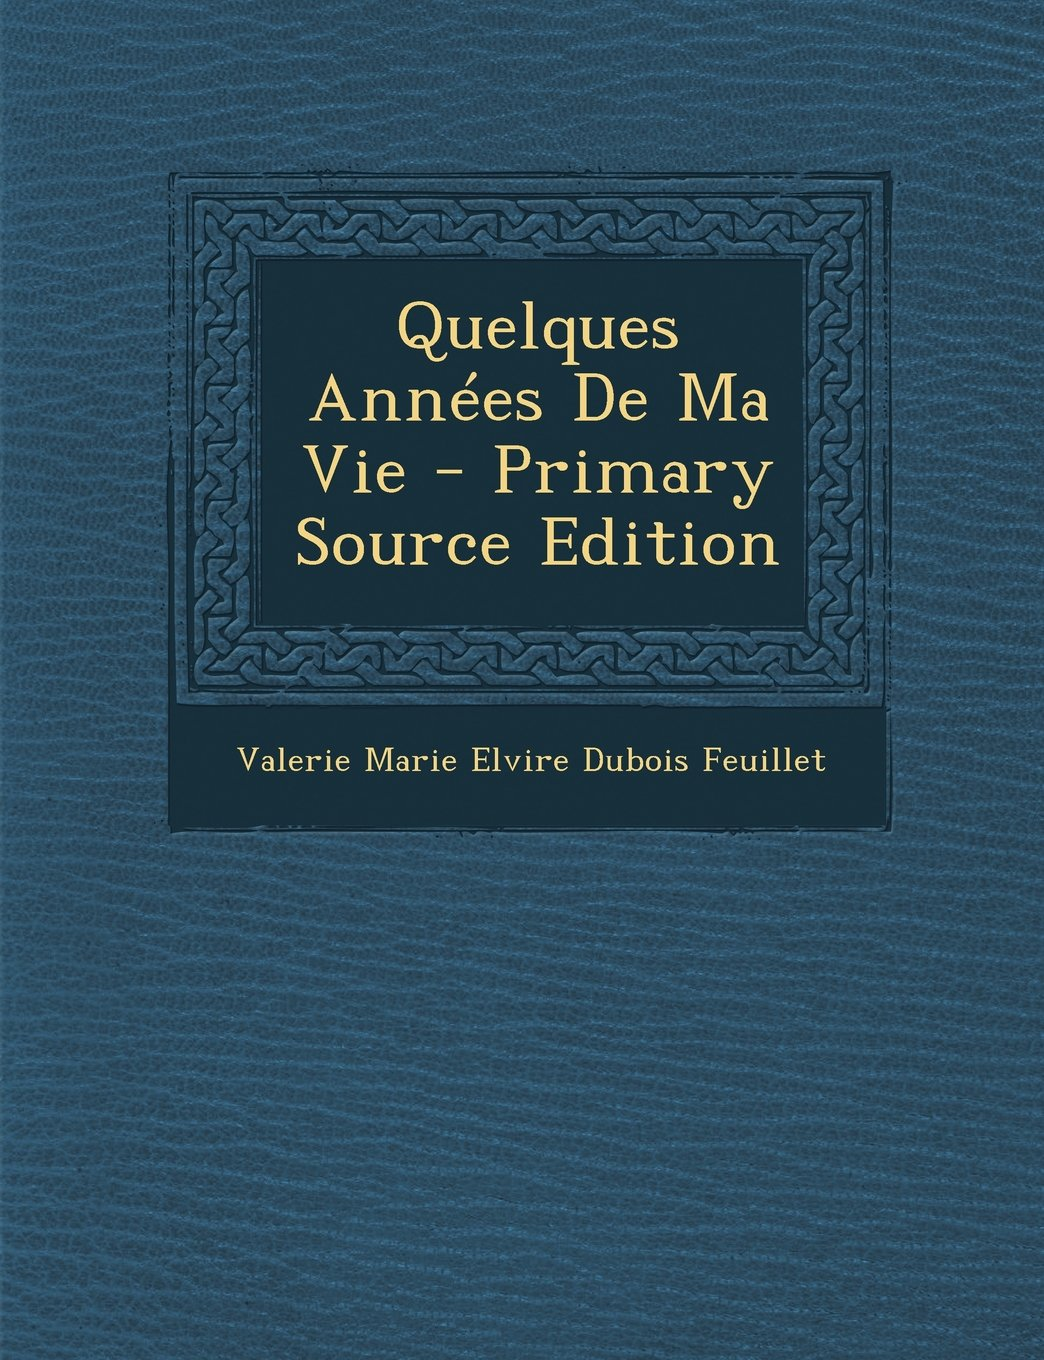 Download Quelques Annees de Ma Vie - Primary Source Edition (French Edition) pdf